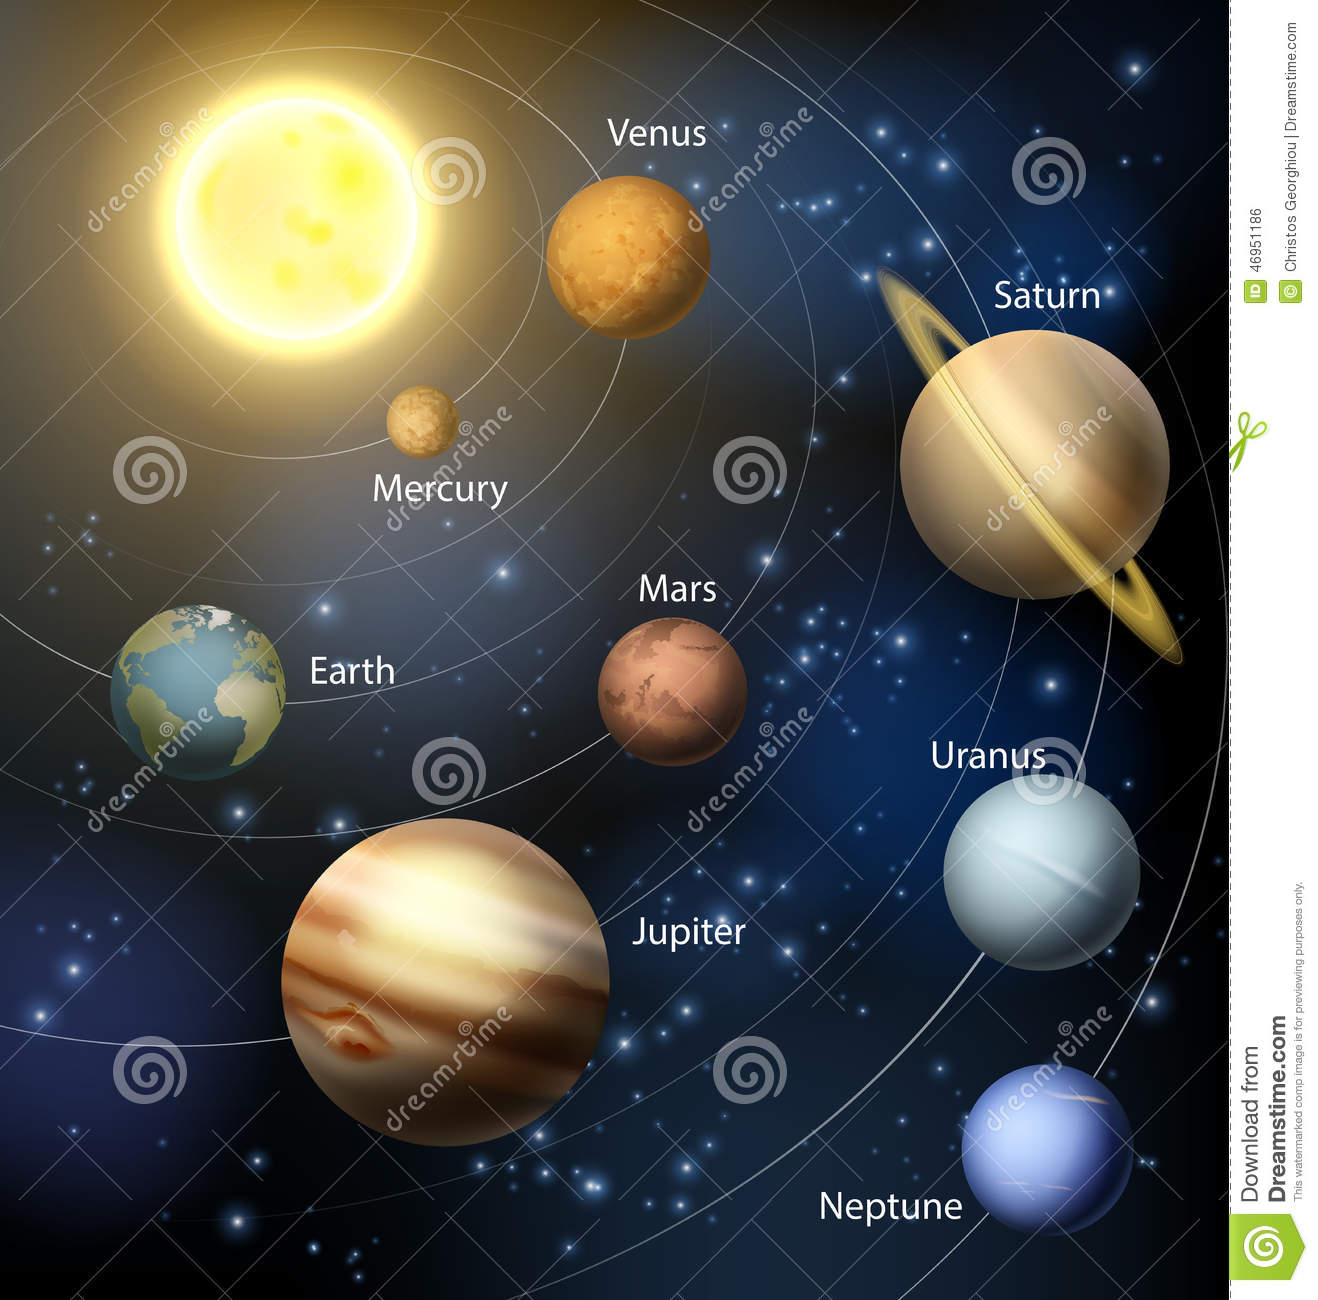 Planets In The Solar System Stock Vector - Image: 46951186